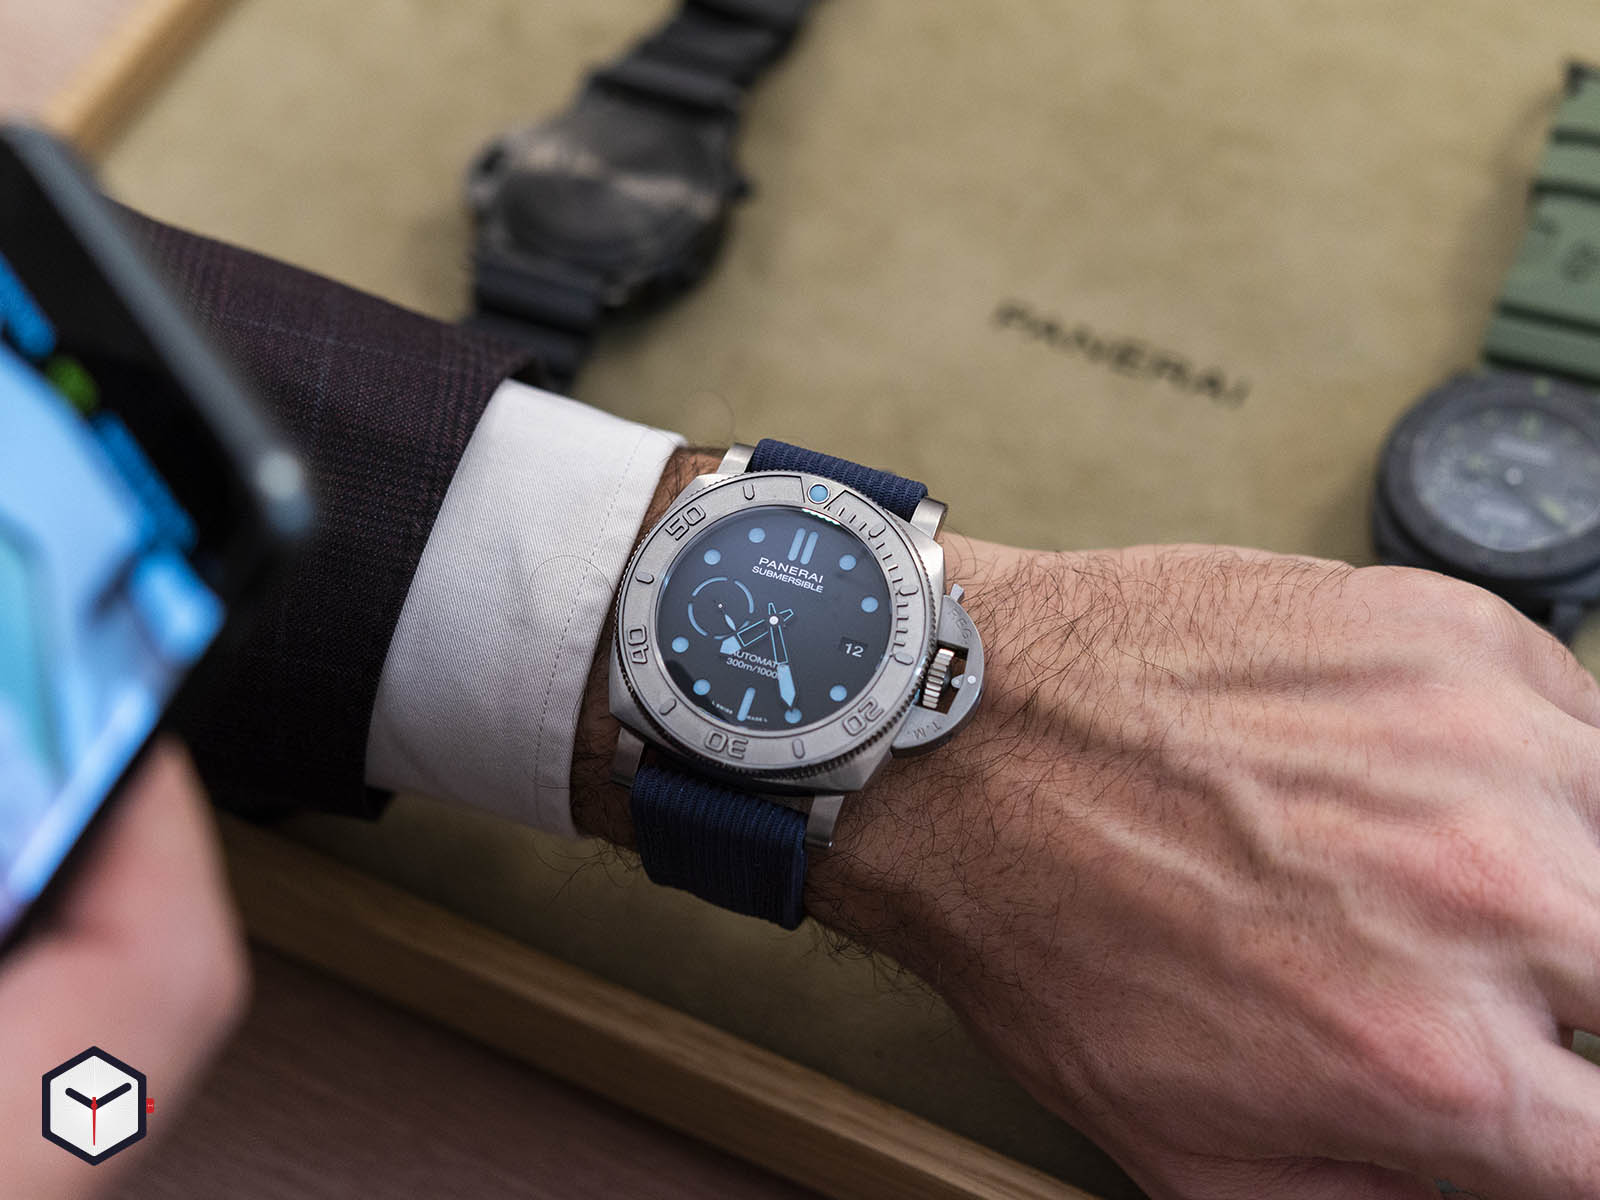 pam00985-officine-panerai-submersible-mike-horn-edition-47mm-sihh-2019-1.jpg